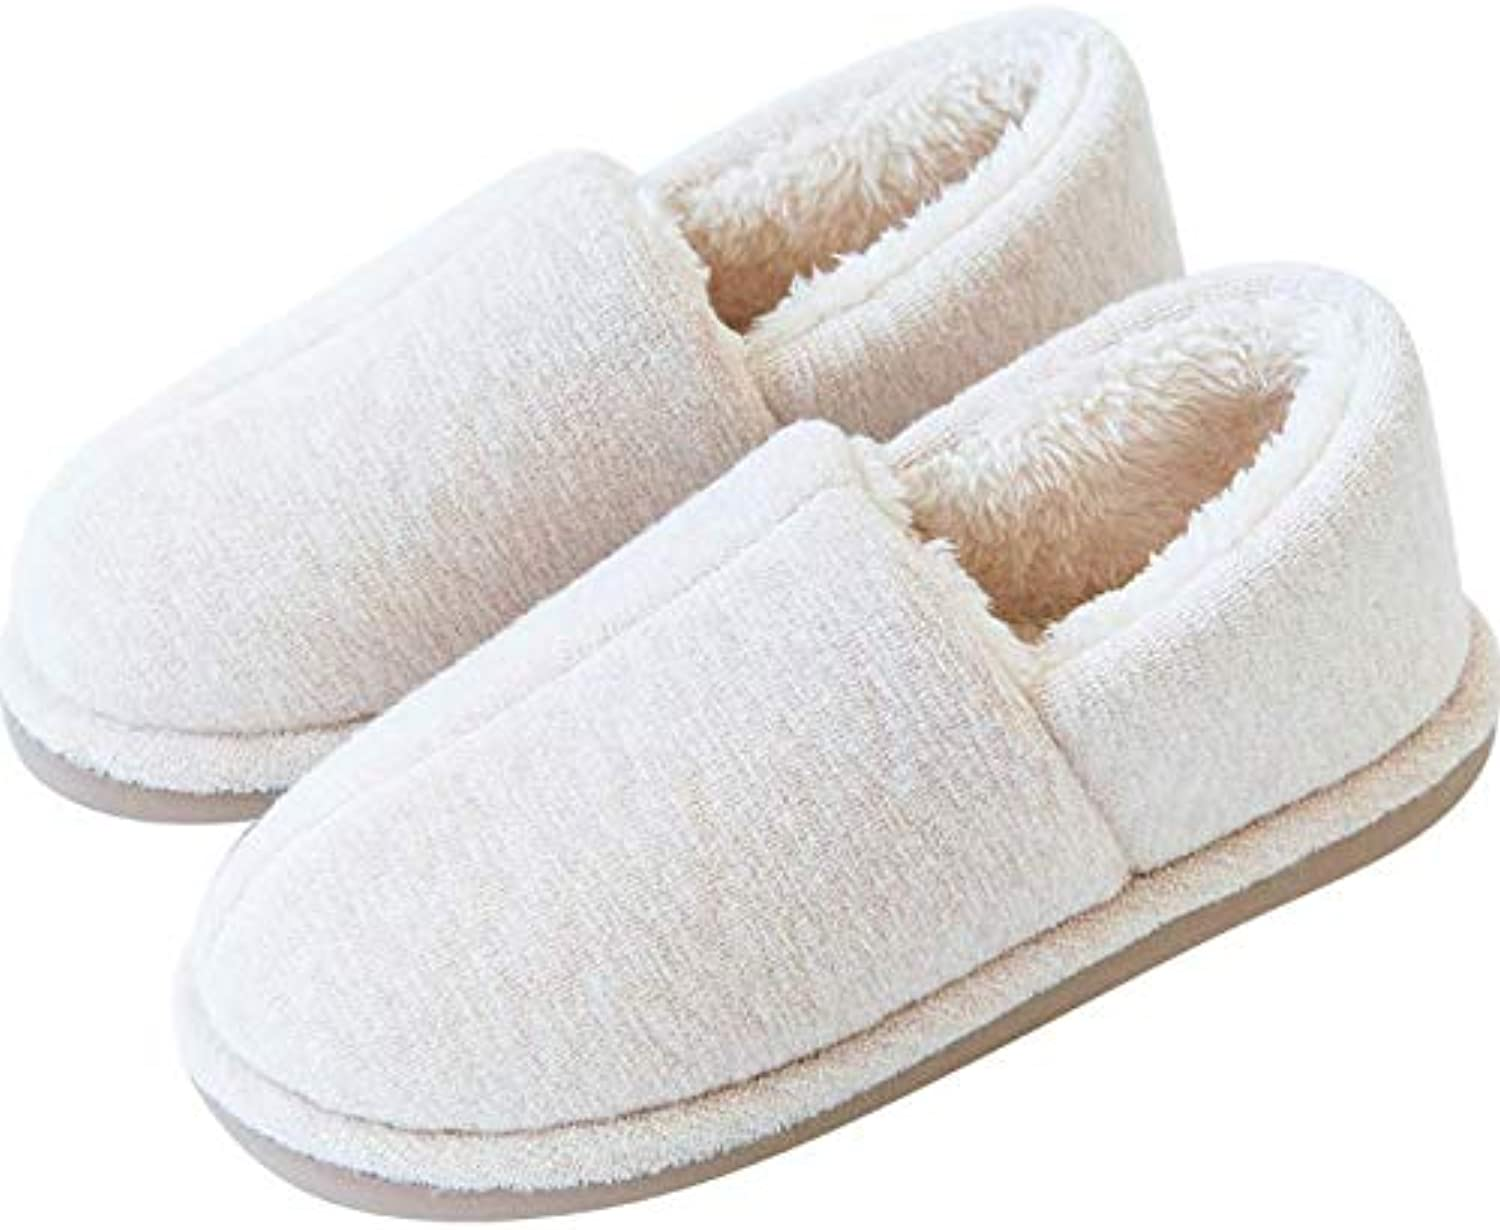 Winter Warm Home Slipper with Soft Cotton Lining, Elastic shoes for Couple, Eva Anti-Slip Sole, Minimalism Design, 4 Optional color,White,37 38